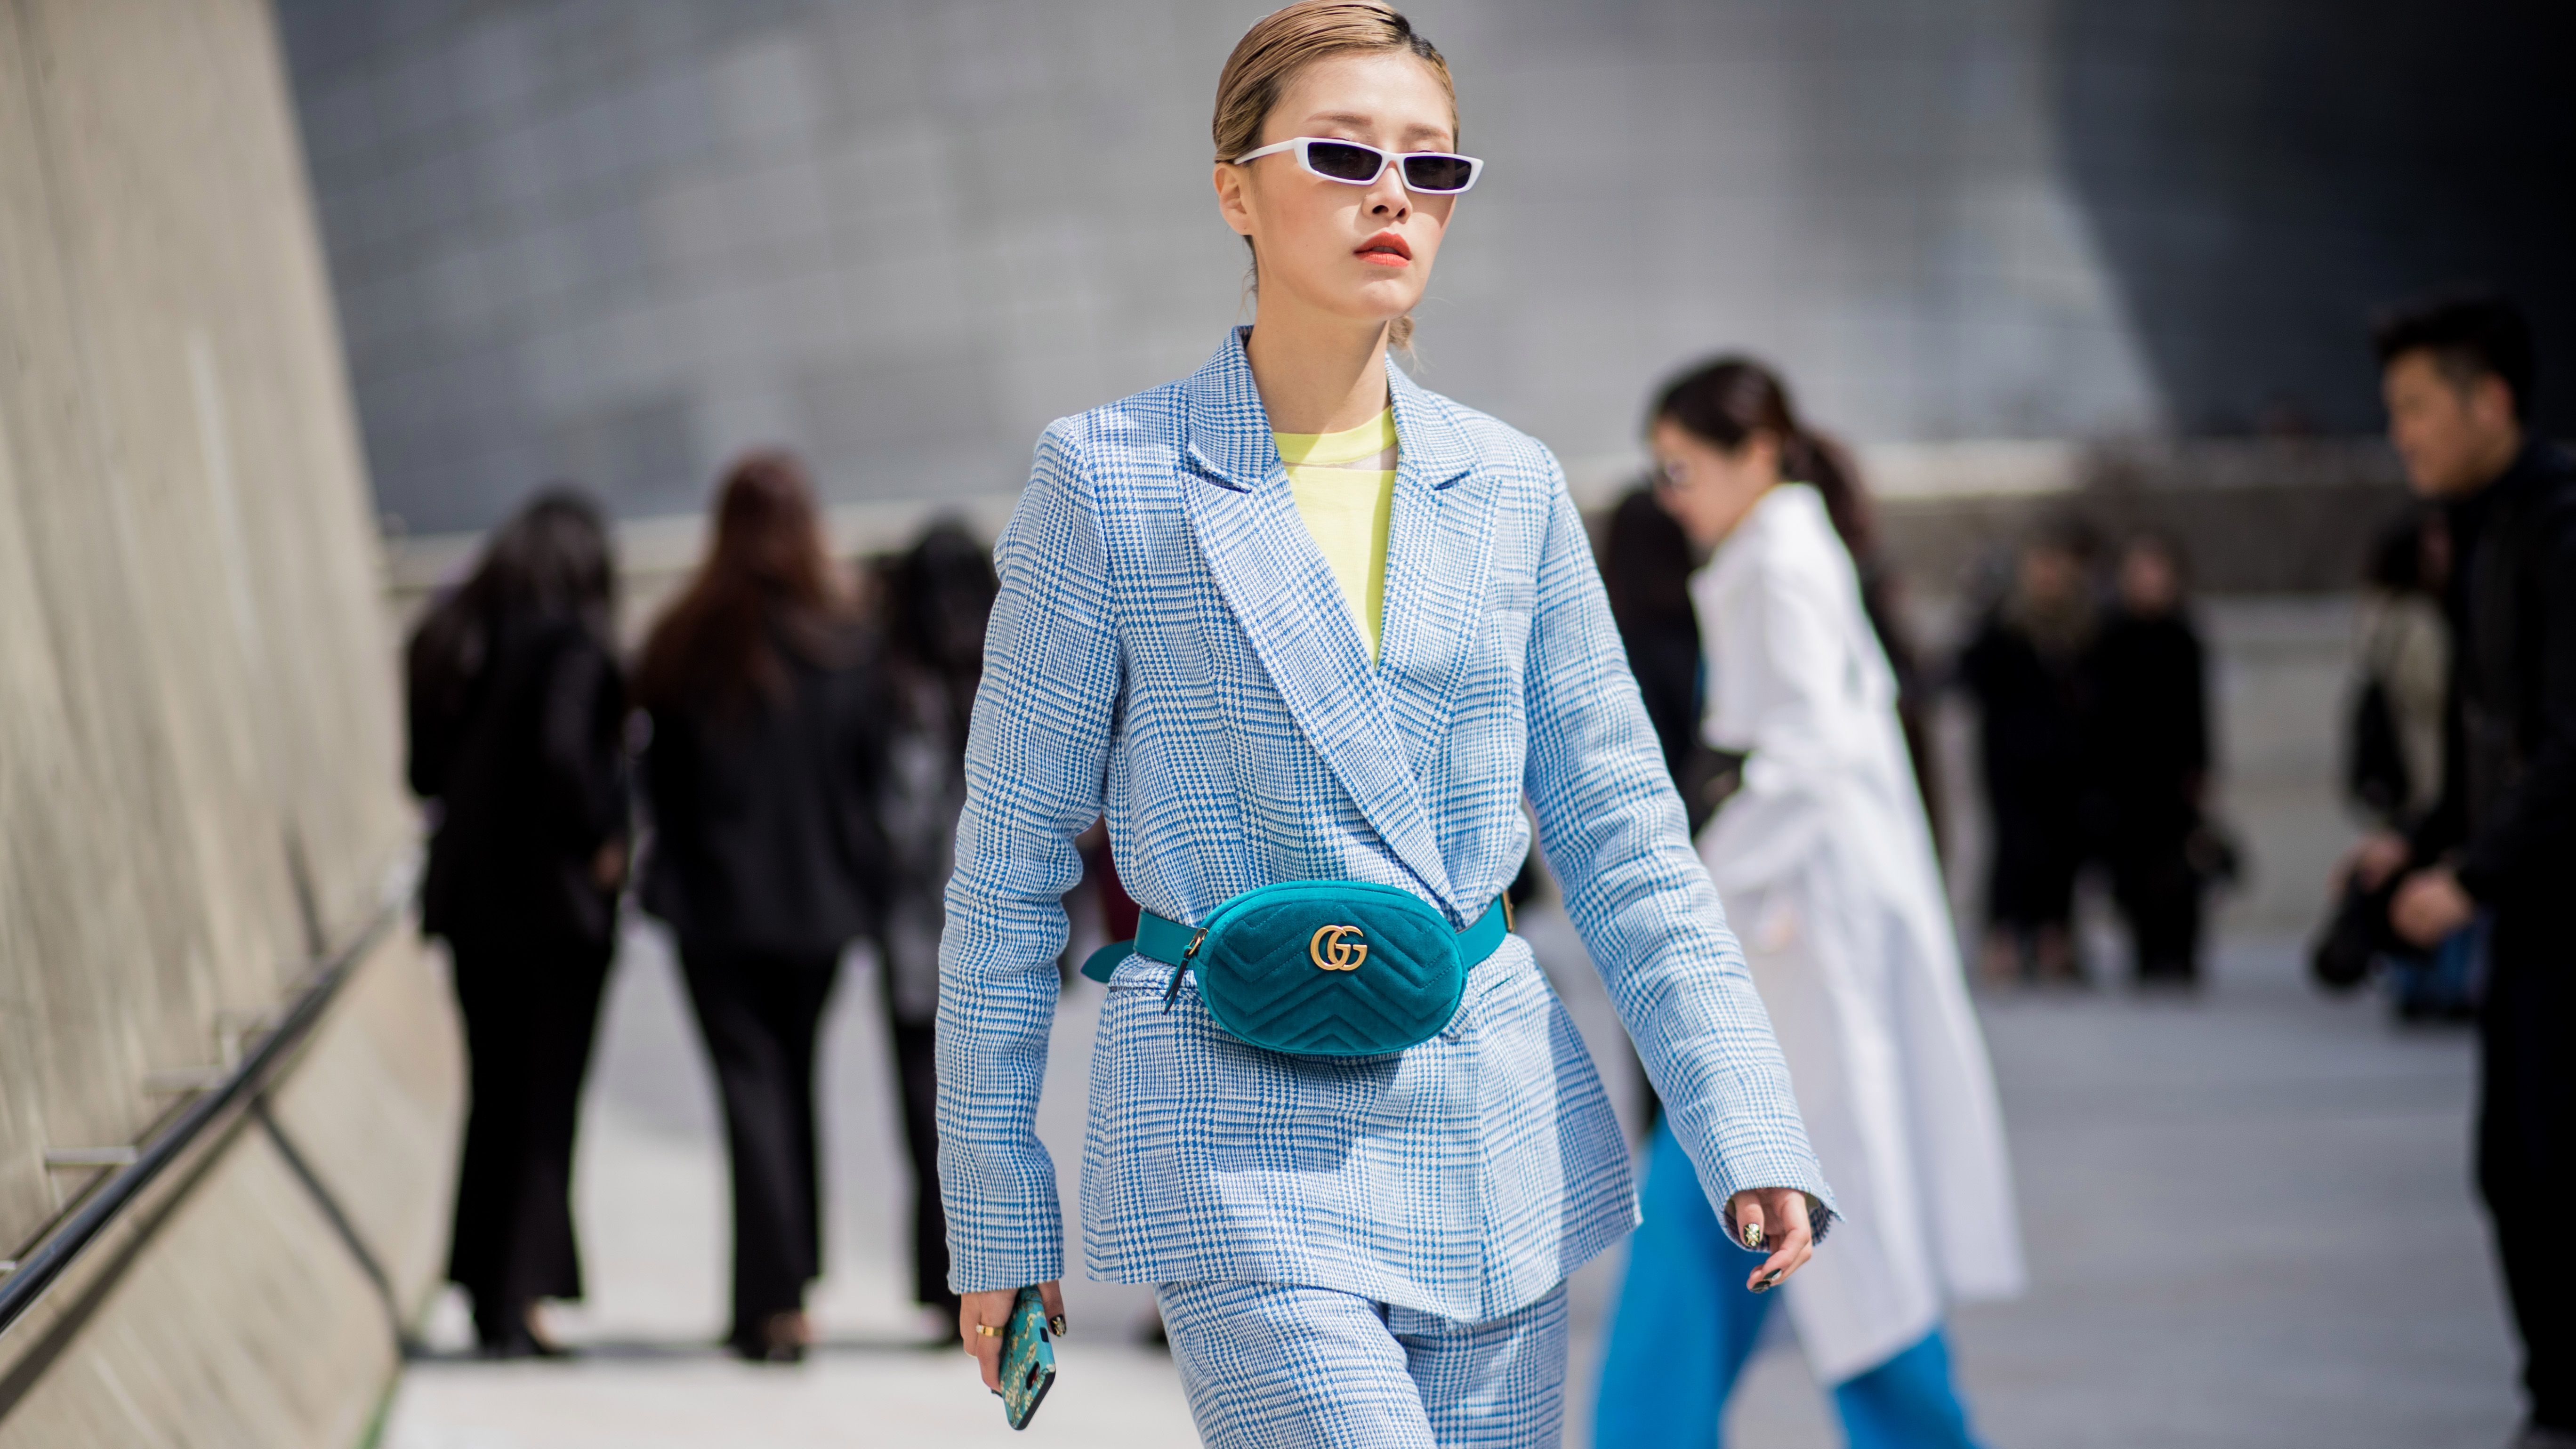 SEOUL, SOUTH KOREA - MARCH 20: A guest wearing velvet Gucci funny bag, blue suit is seen at the Hera Seoul Fashion Week 2018 F/W at Dongdaemun Design Plaza on March 20, 2018 in Seoul, South Korea. (Photo by Christian Vierig/Getty Images)